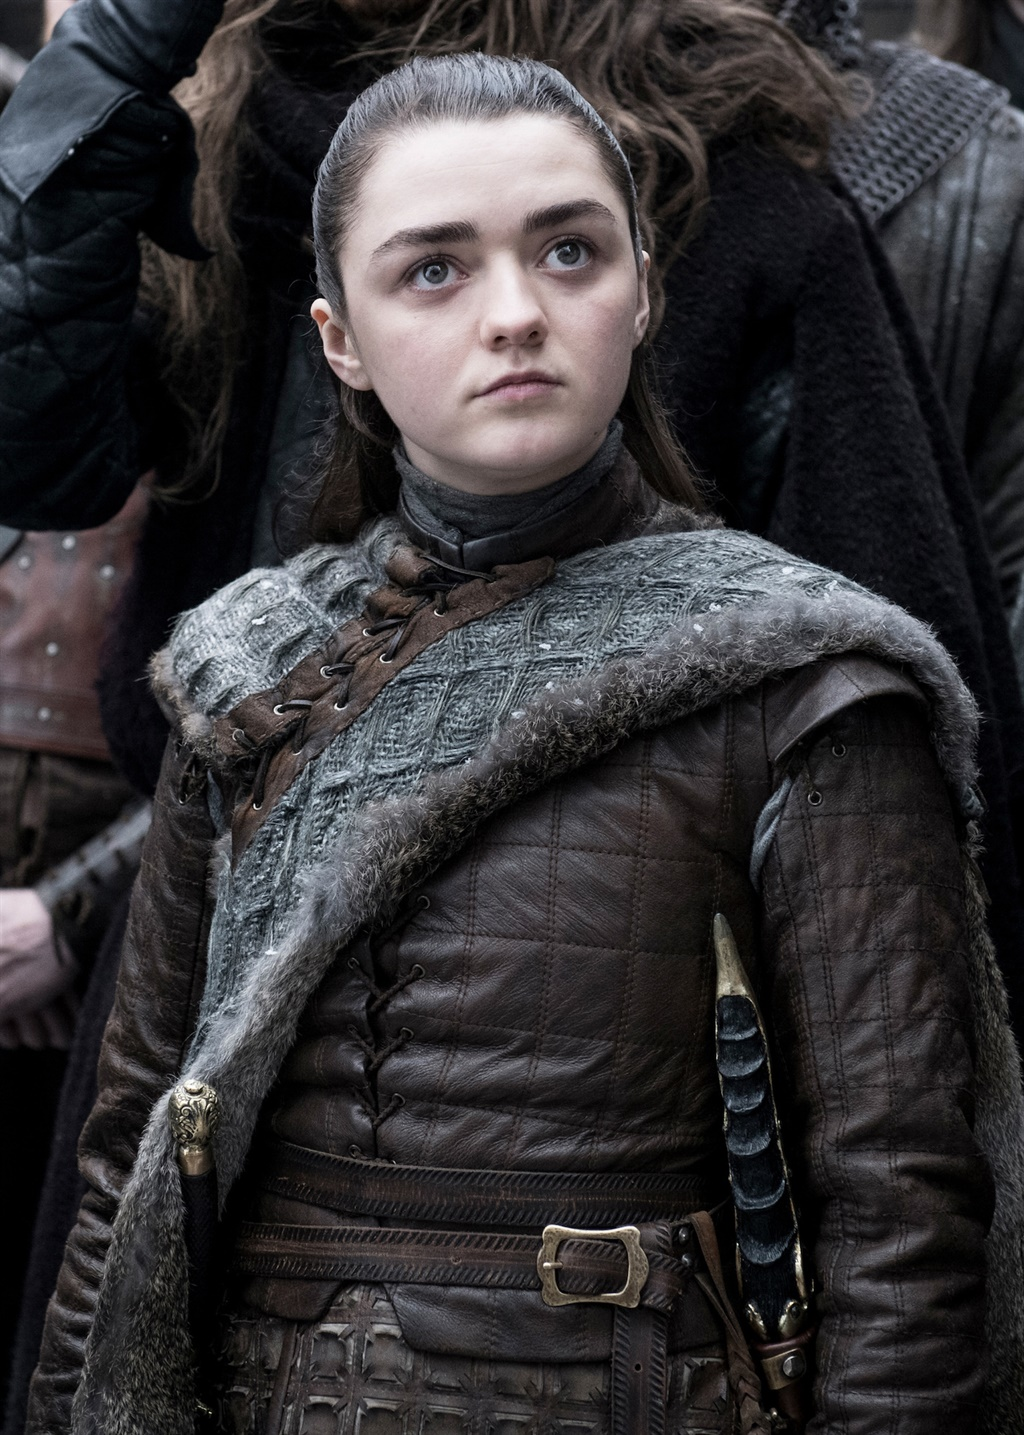 Maisie Williams (22) was net 13 toe sy stof in die